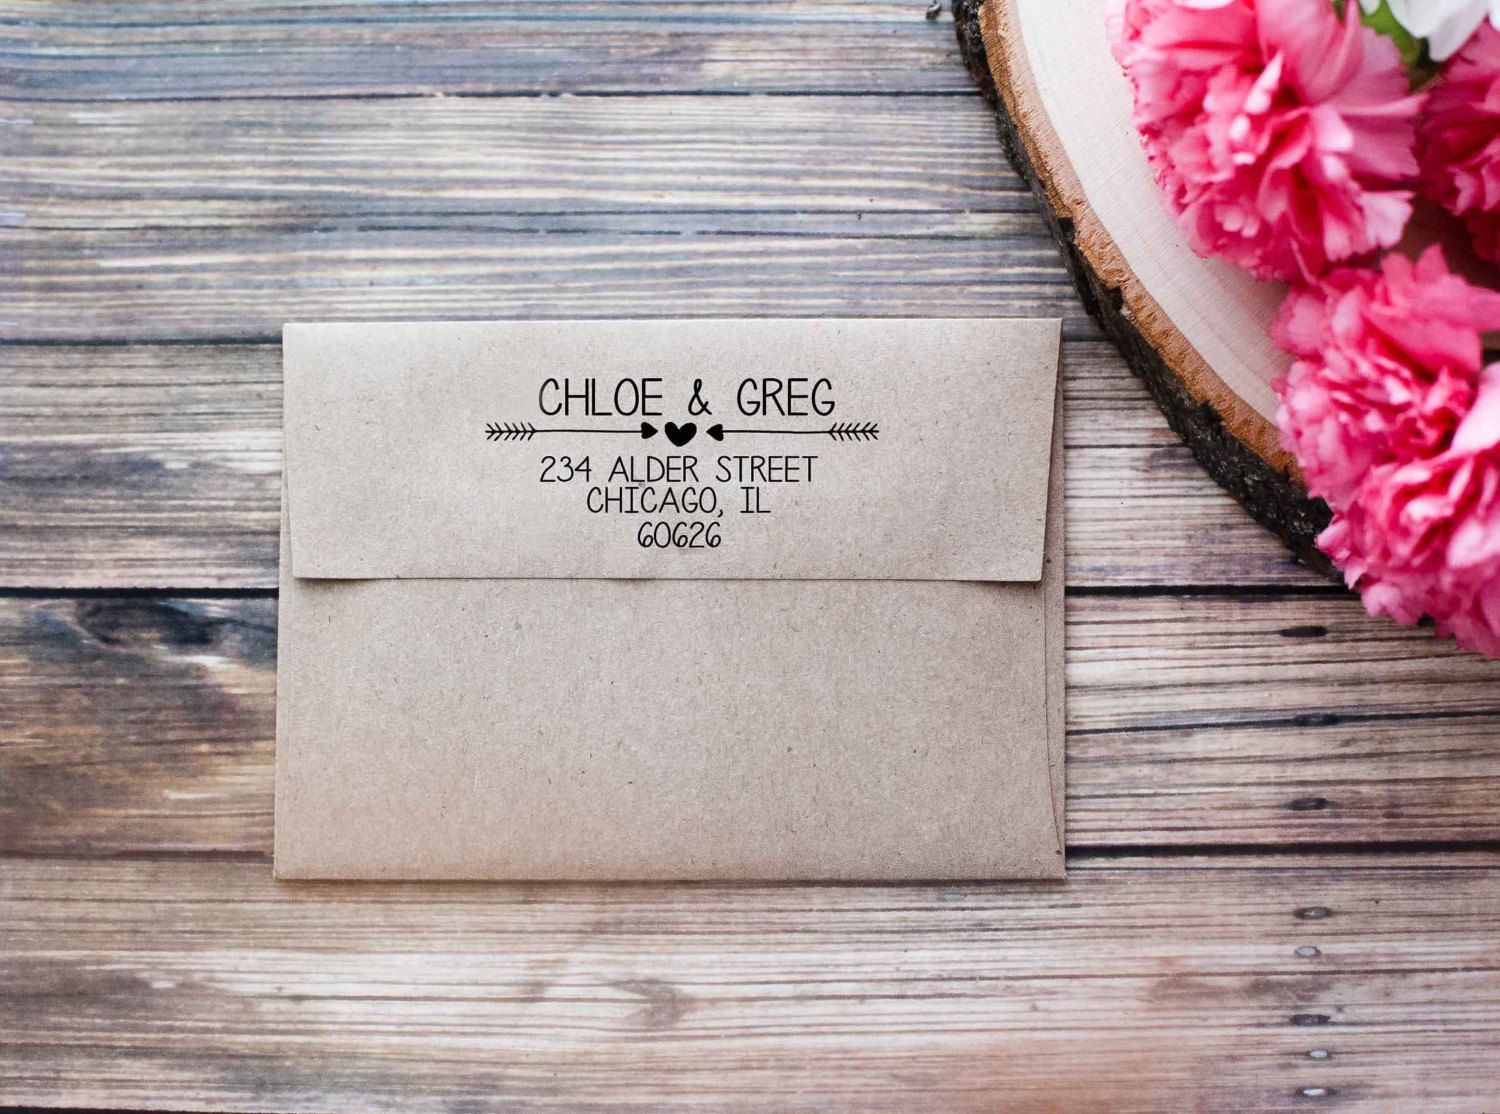 17 Best ideas about Addressing Wedding Invitations on Pinterest ...